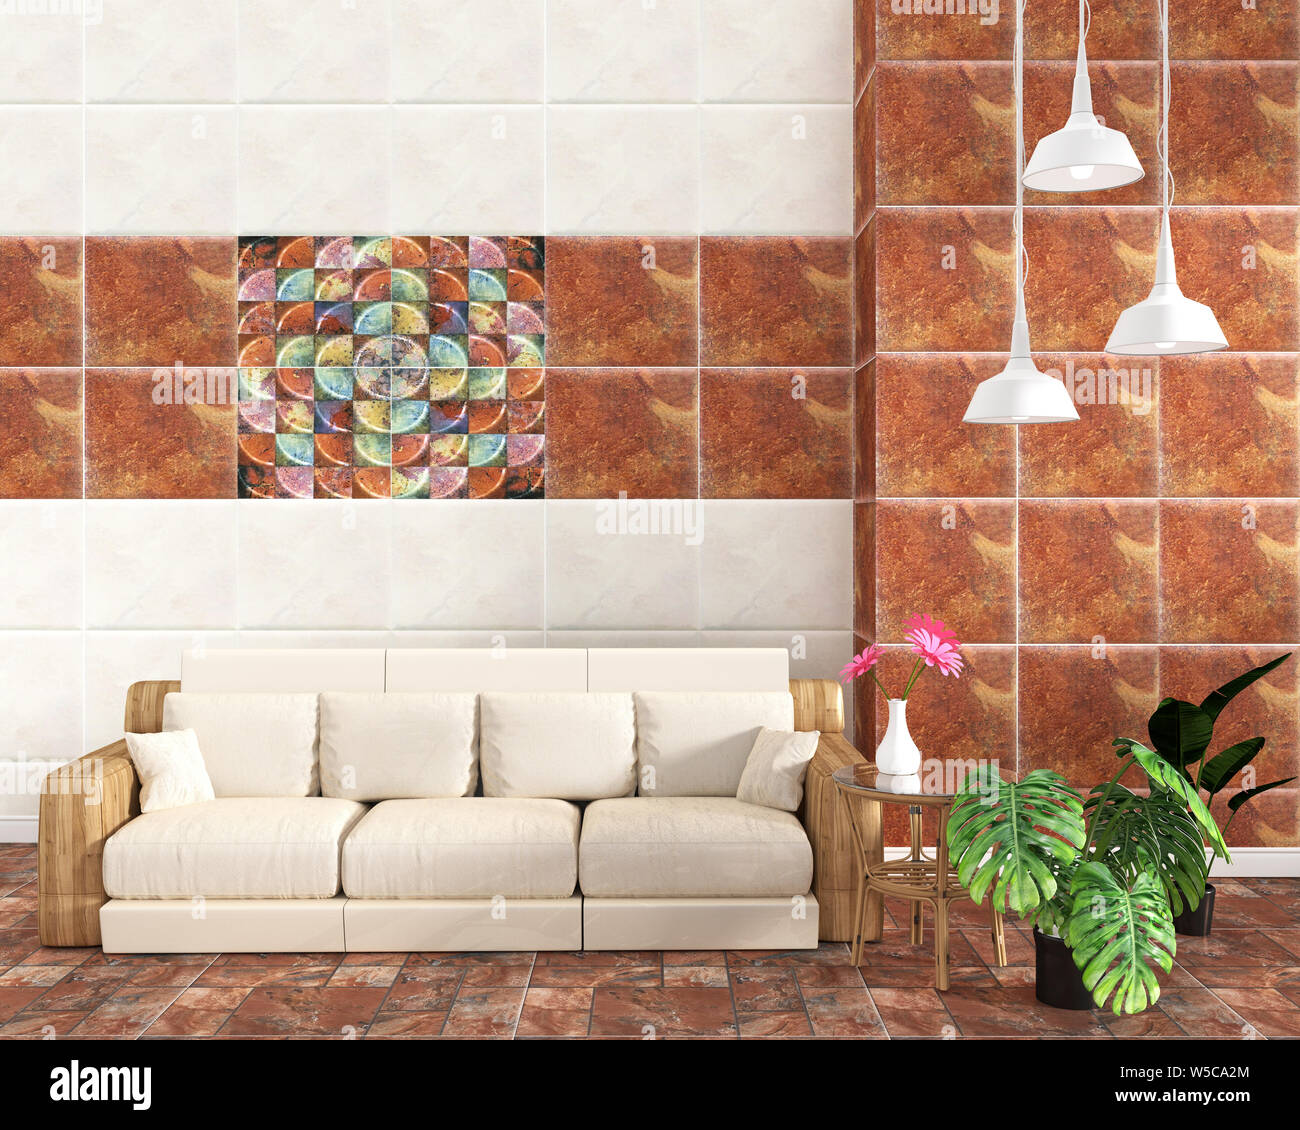 Living Room Interior With Tile Classic Texture Wall Background On Tile Brown Floor Minimal Designs 3d Rendering Stock Photo Alamy